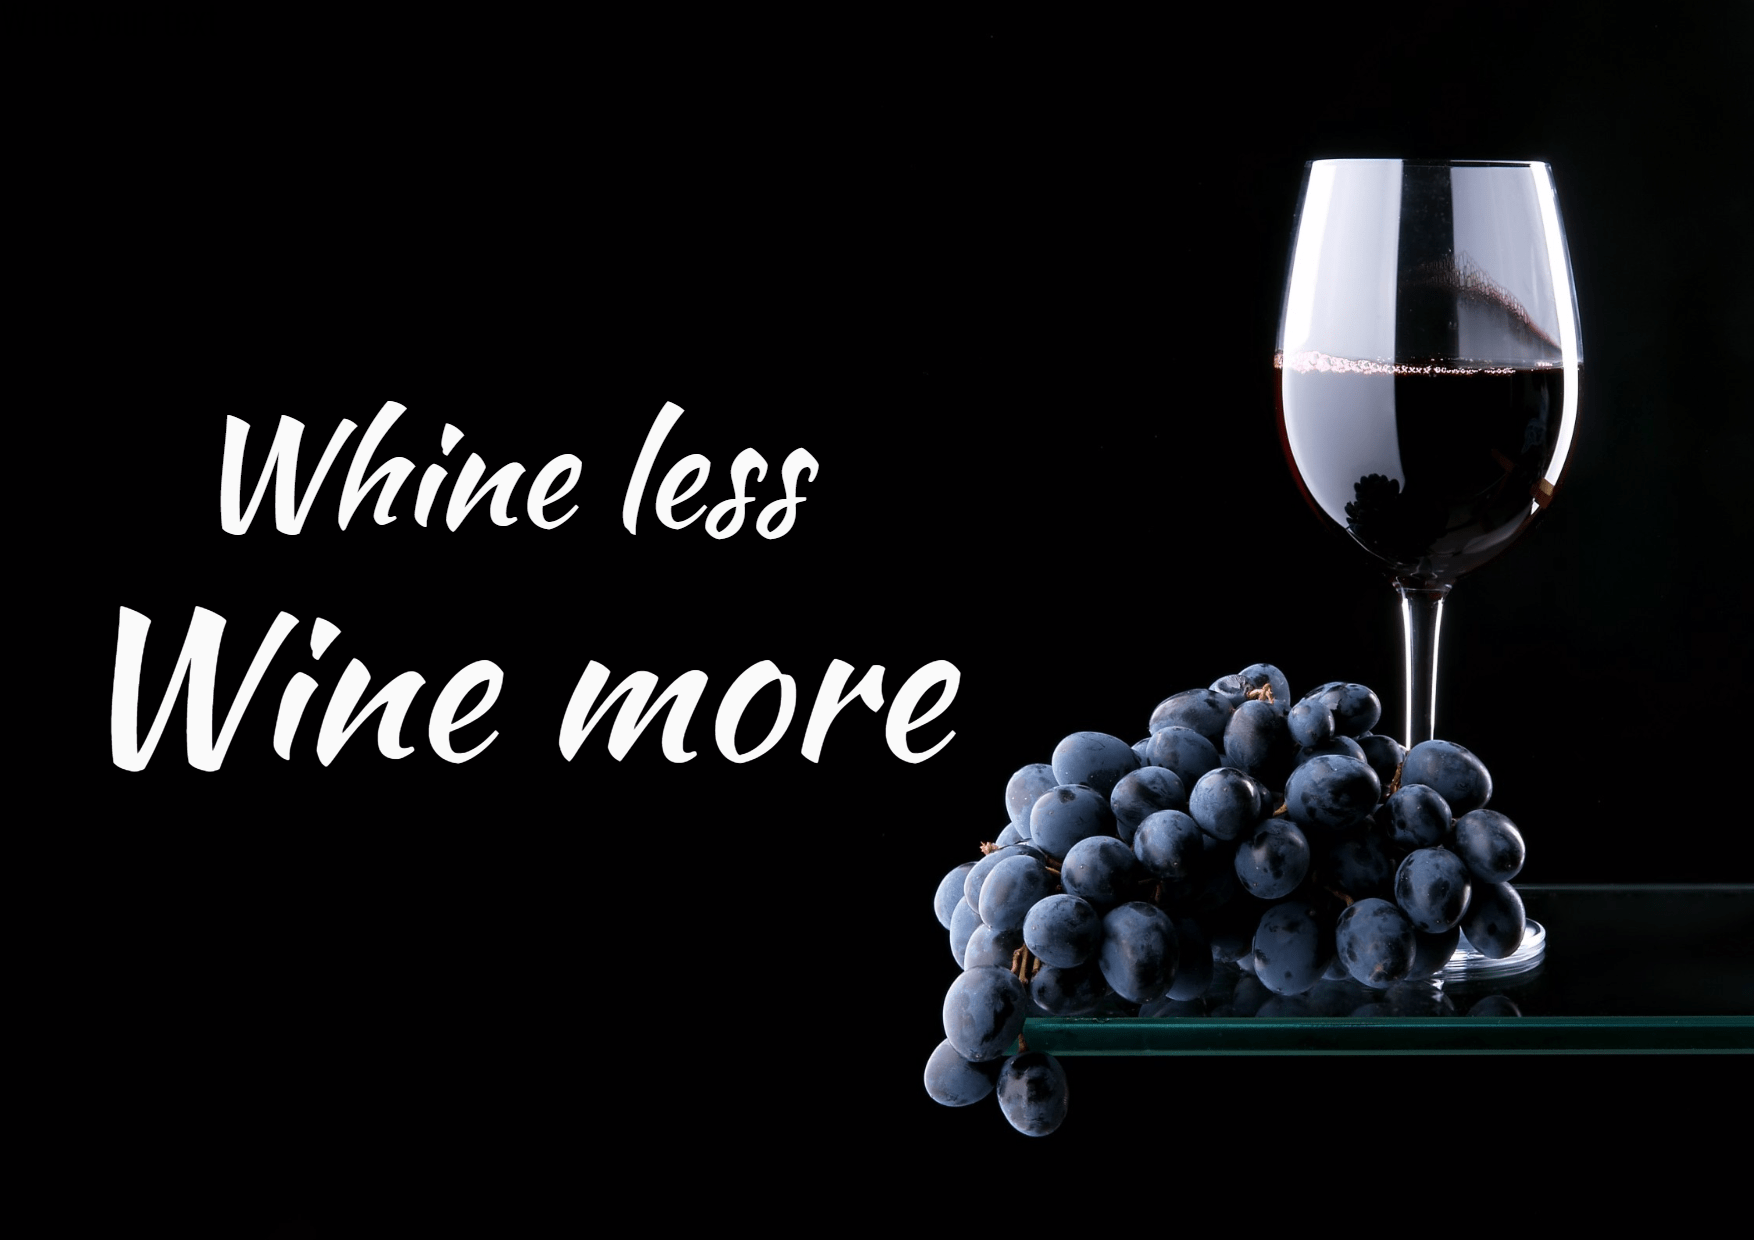 Whine less wine more #Poster #Wine Design  Template